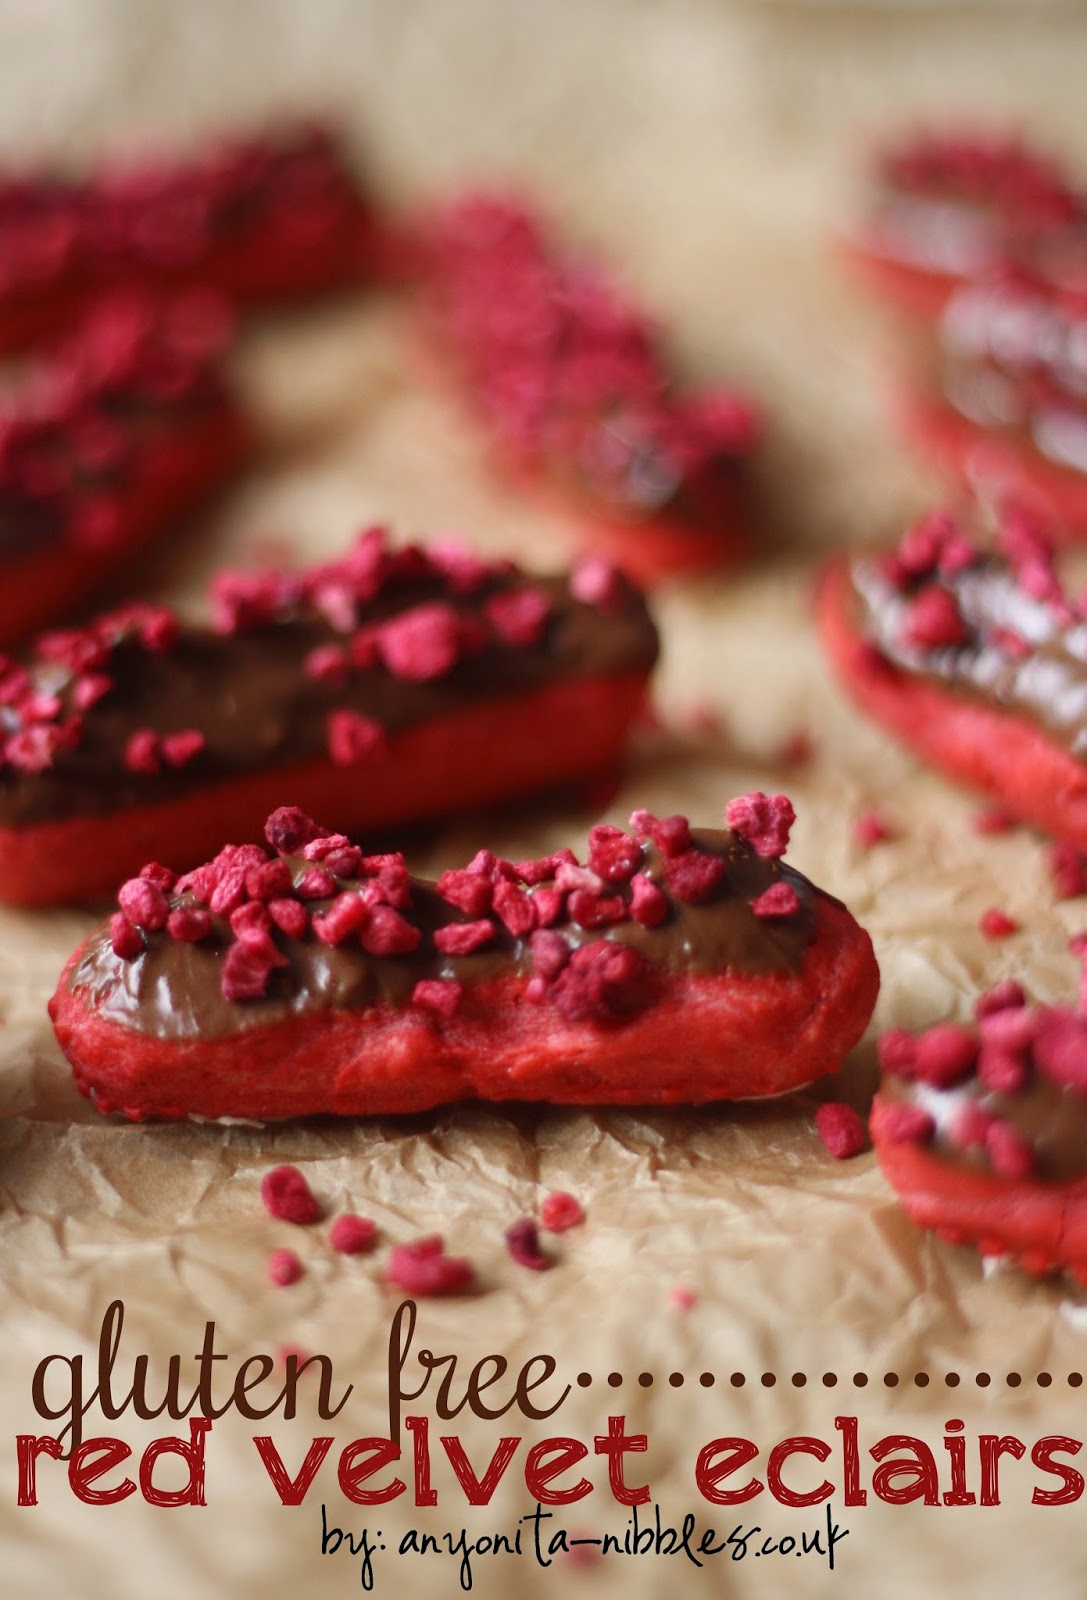 8 Last Minute Christmas Treats: Gluten Free Red Velvet Eclairs from Anyonita-nibbles.co.uk